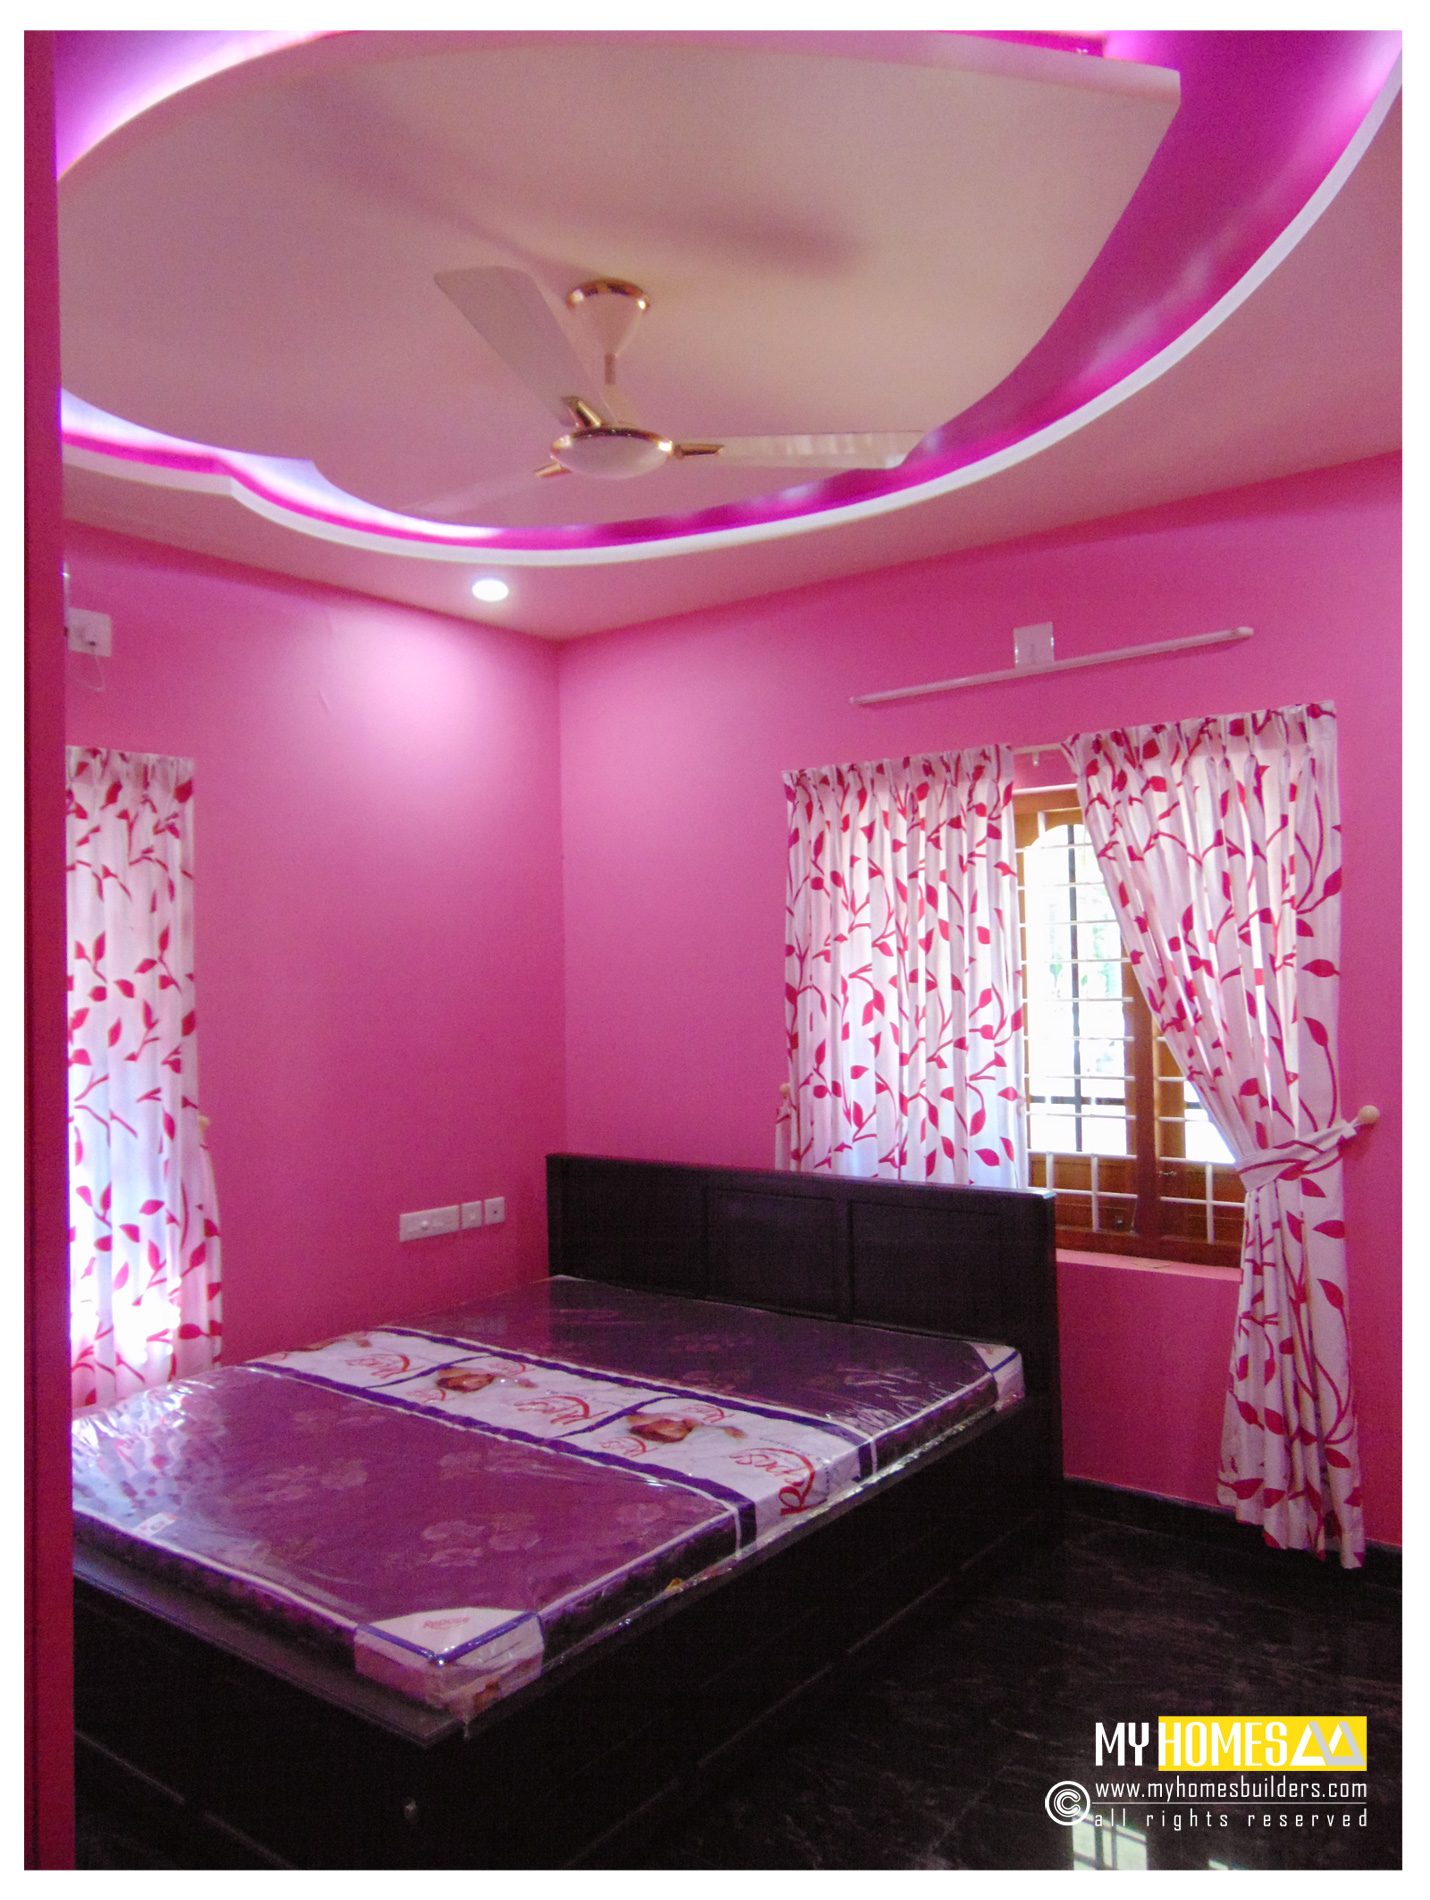 Simple style kerala bedroom designs ideas for home interior Home interior design bedroom